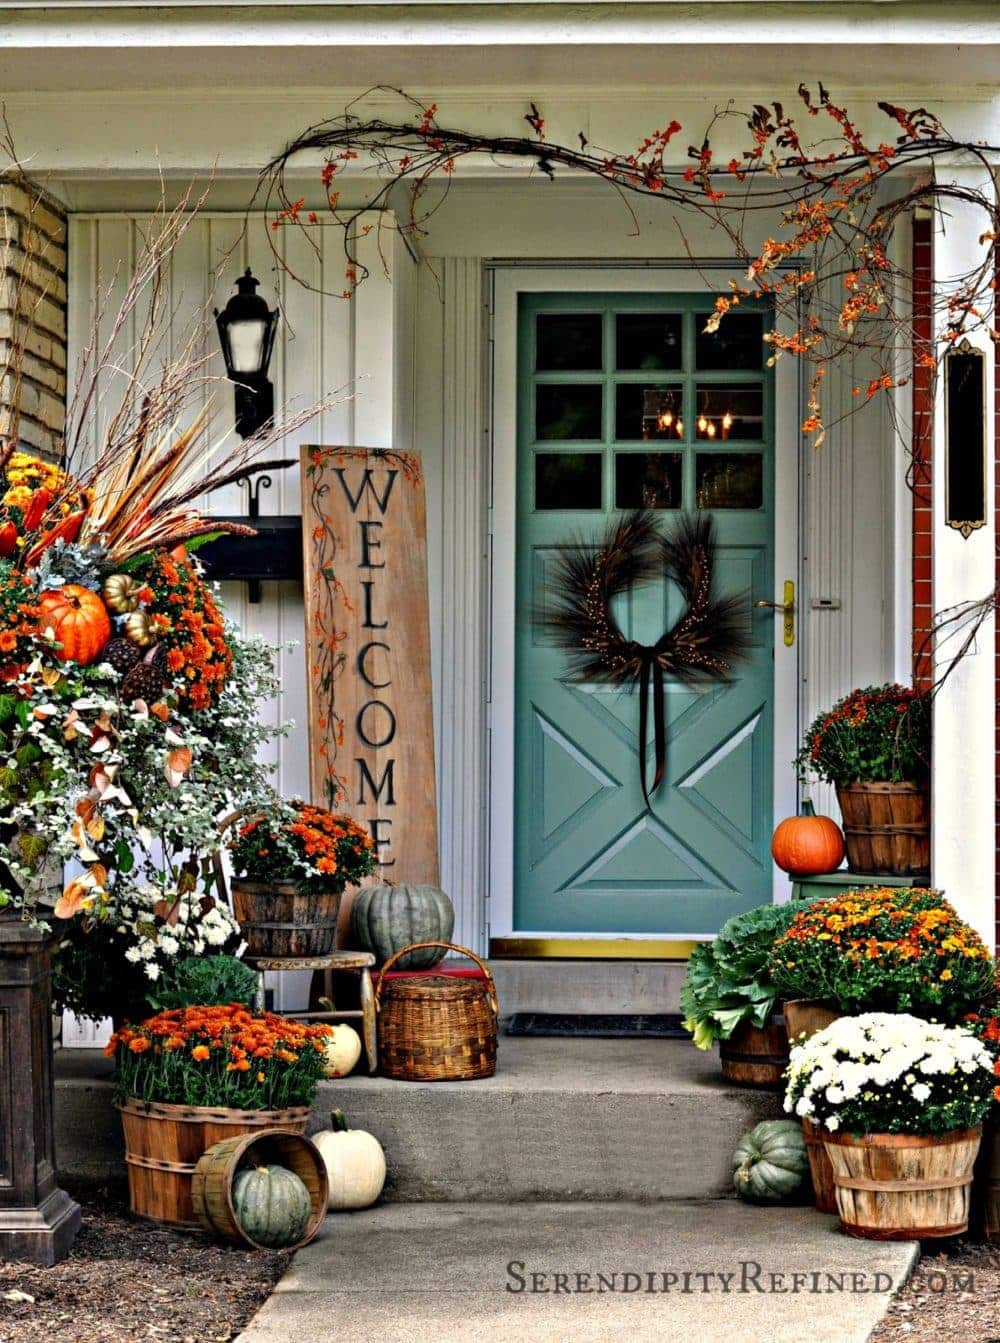 Fall front porch ideas using mums, pumpkins and branches draped over the door